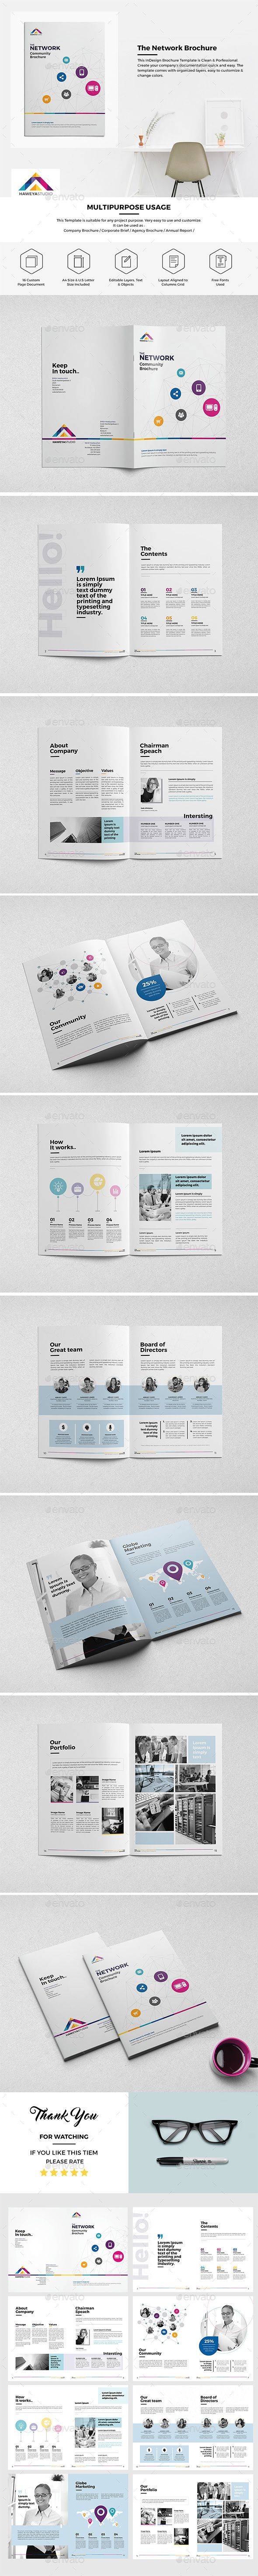 Haweya Community Brochure 16 Pages  #brochure #brochure design #business • Available here → http://graphicriver.net/item/haweya-community-brochure-16-pages/15582093?ref=pxcr